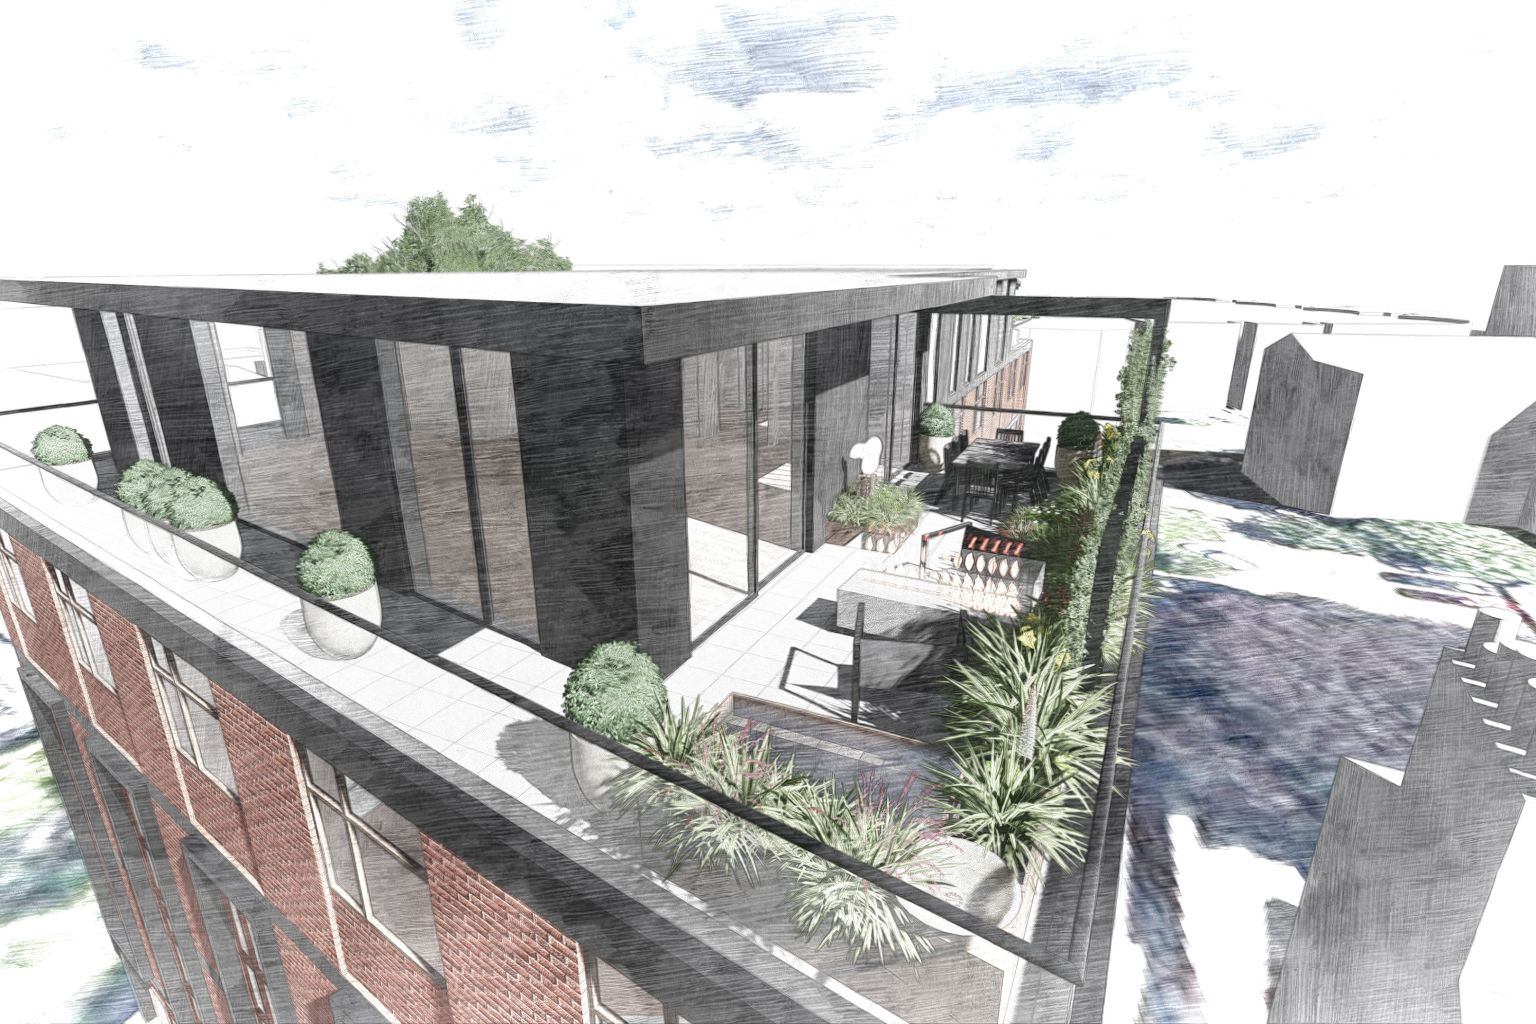 Penthouse roof terrace exeter harris bugg for Terrace exeter